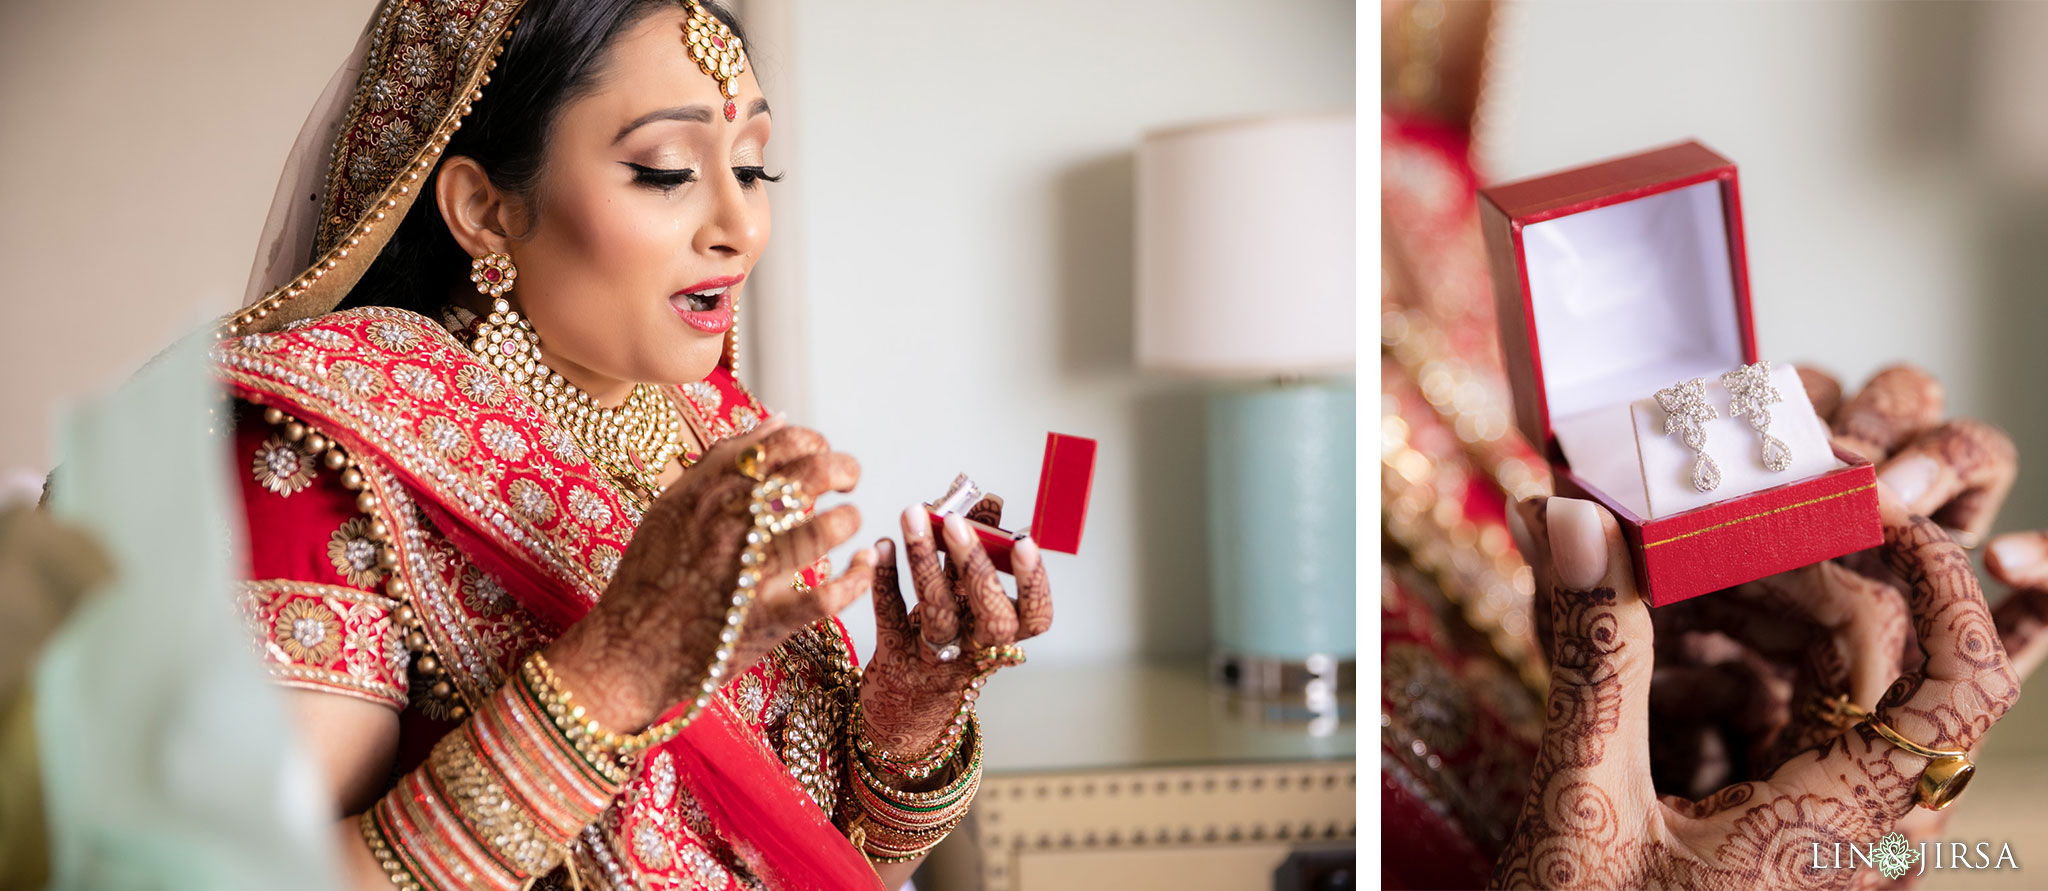 05 loews coronado bay resort indian bride wedding photography